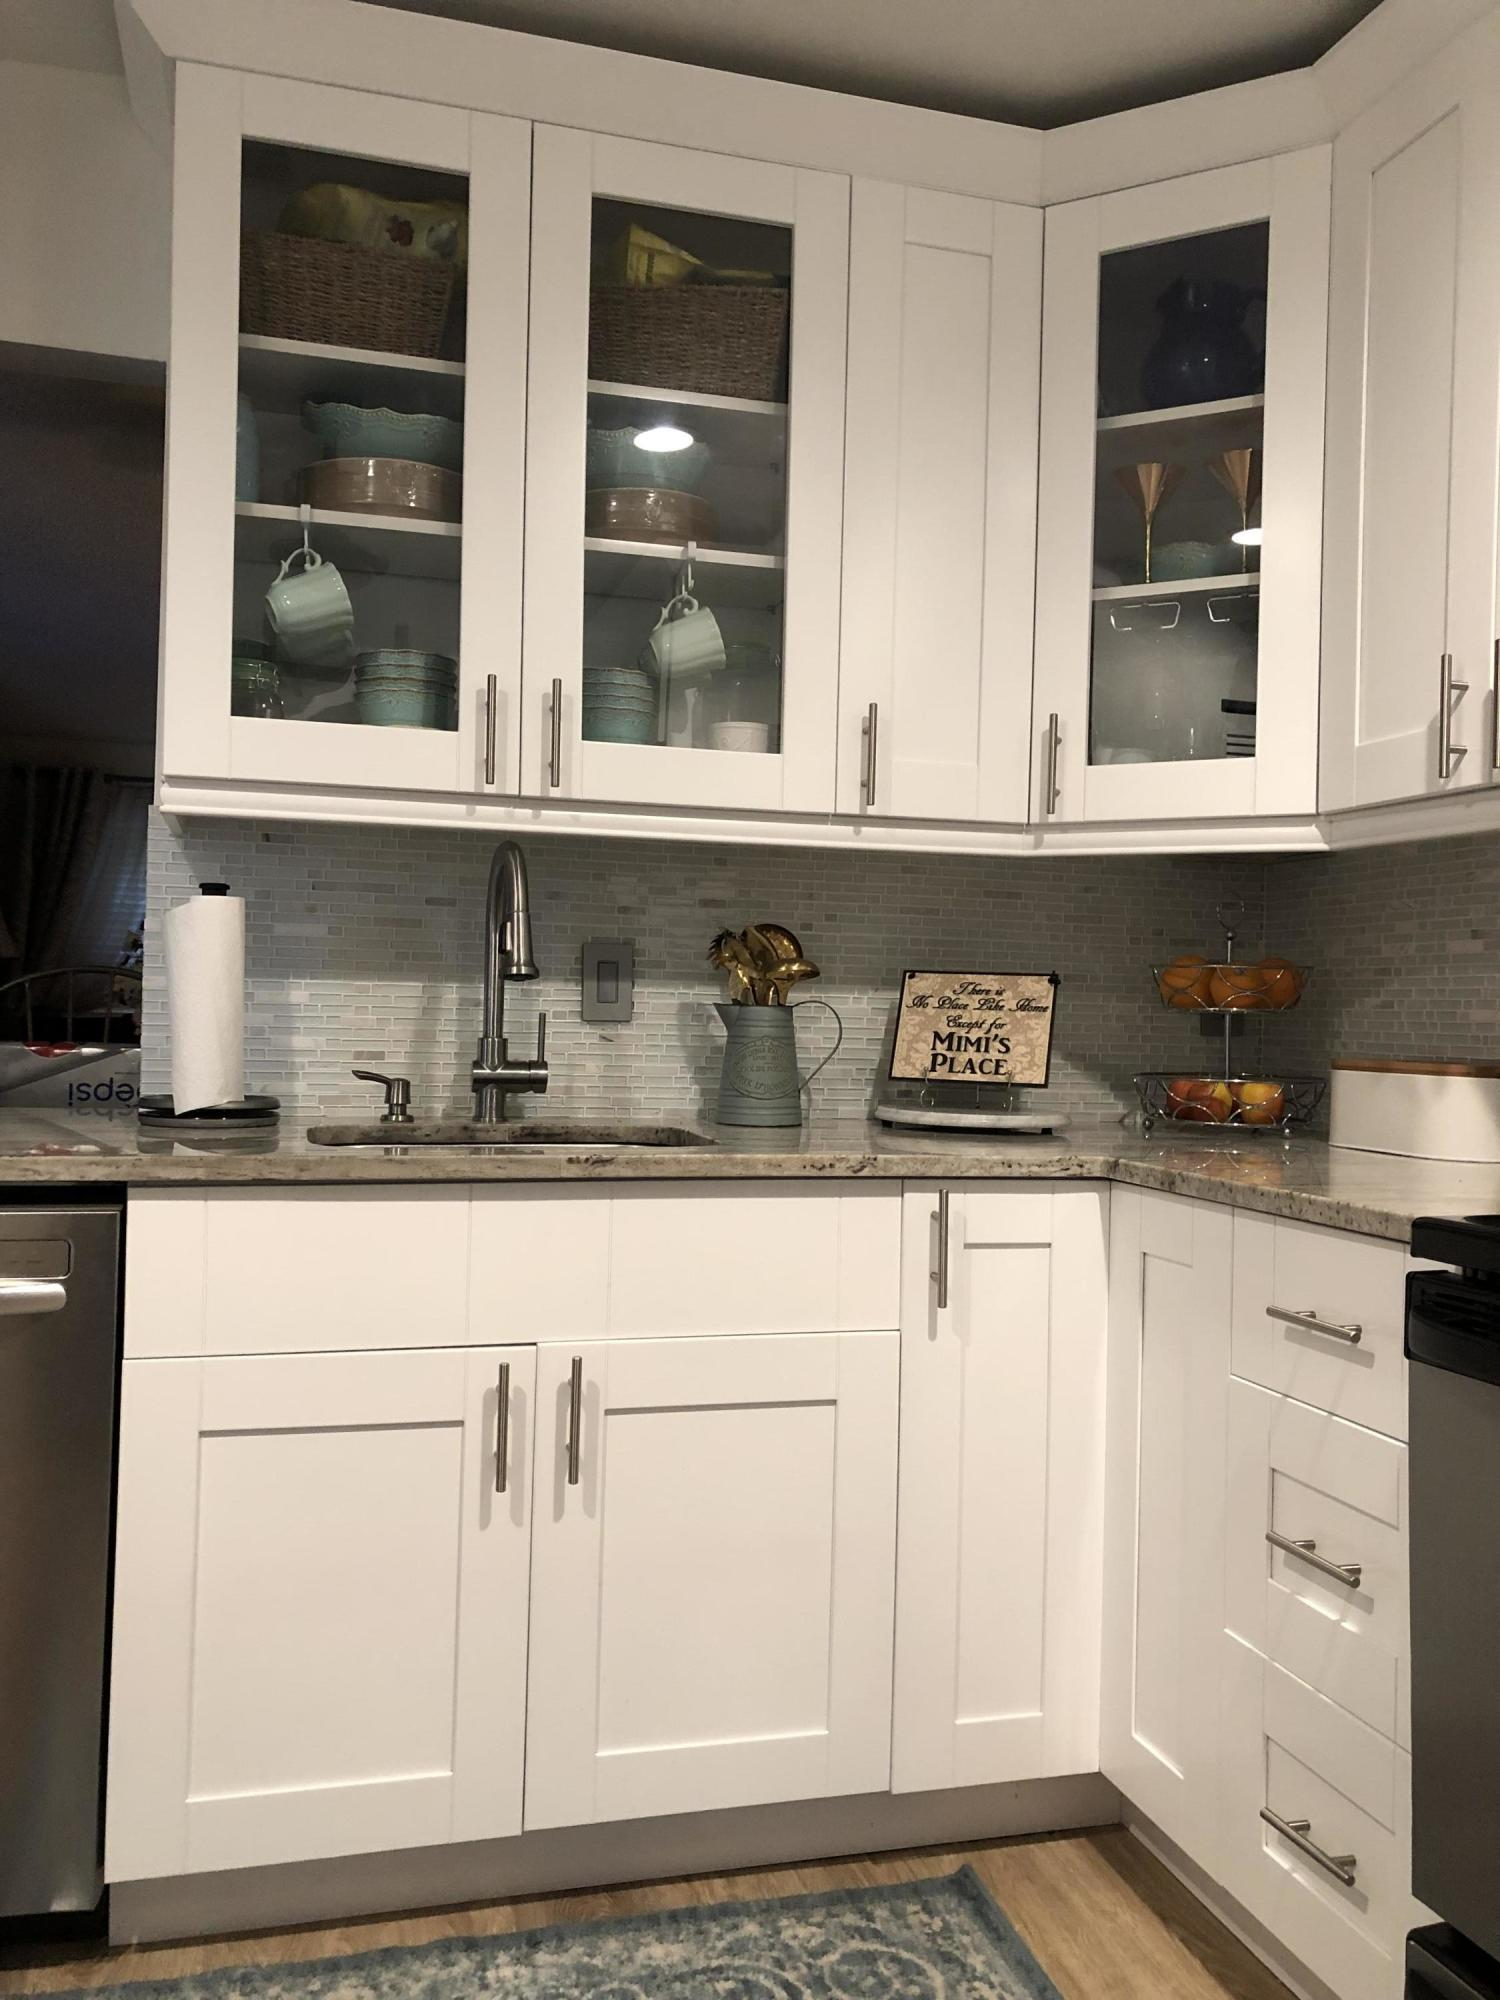 new counters and cabinets